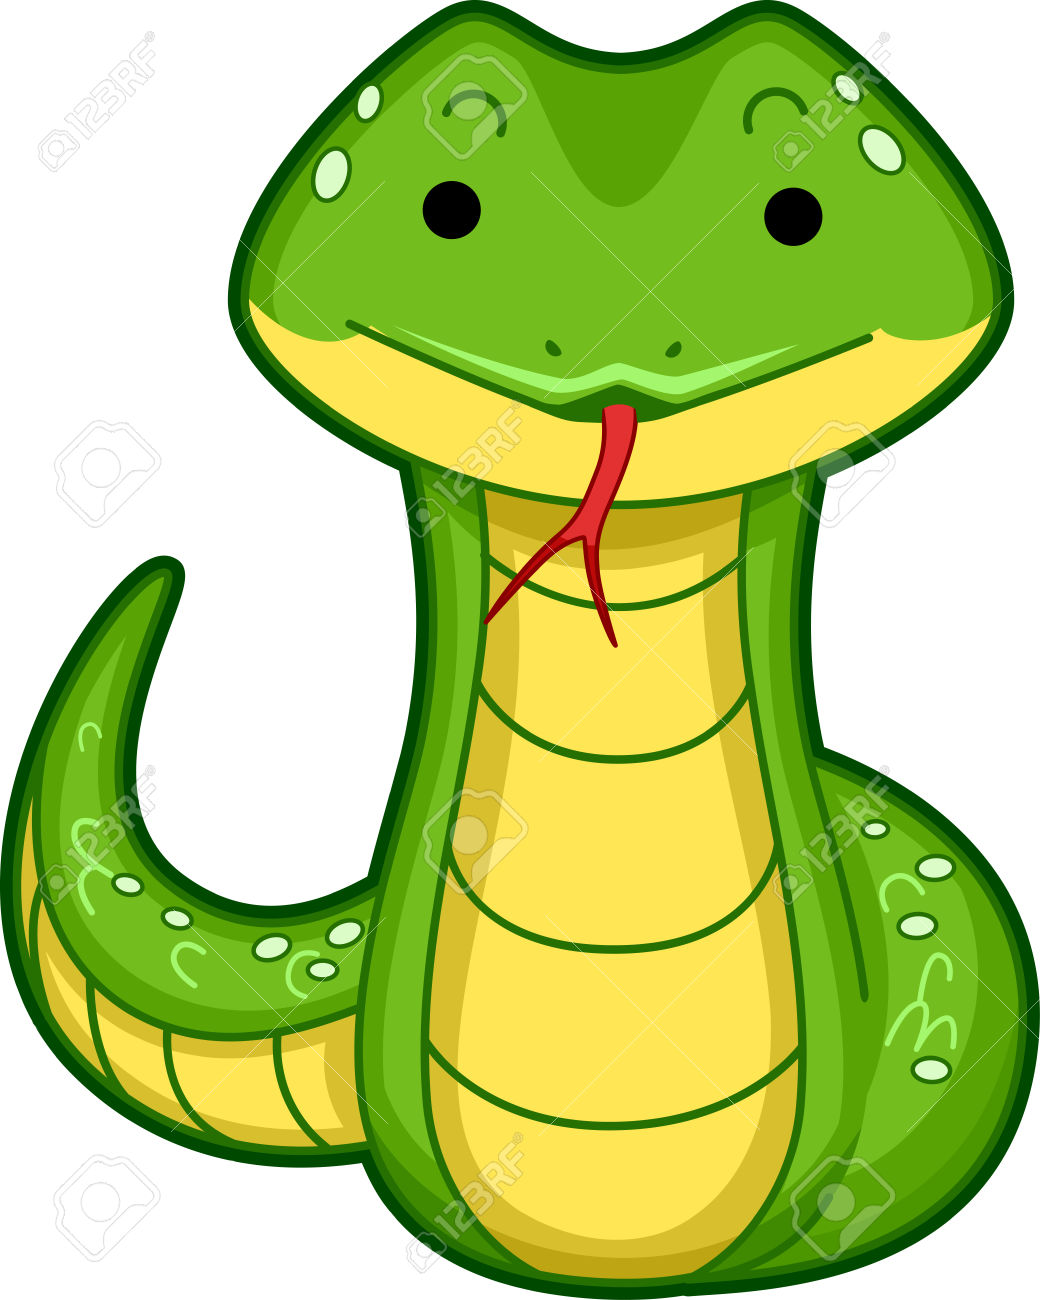 1040x1300 Snake clipart snake tongue